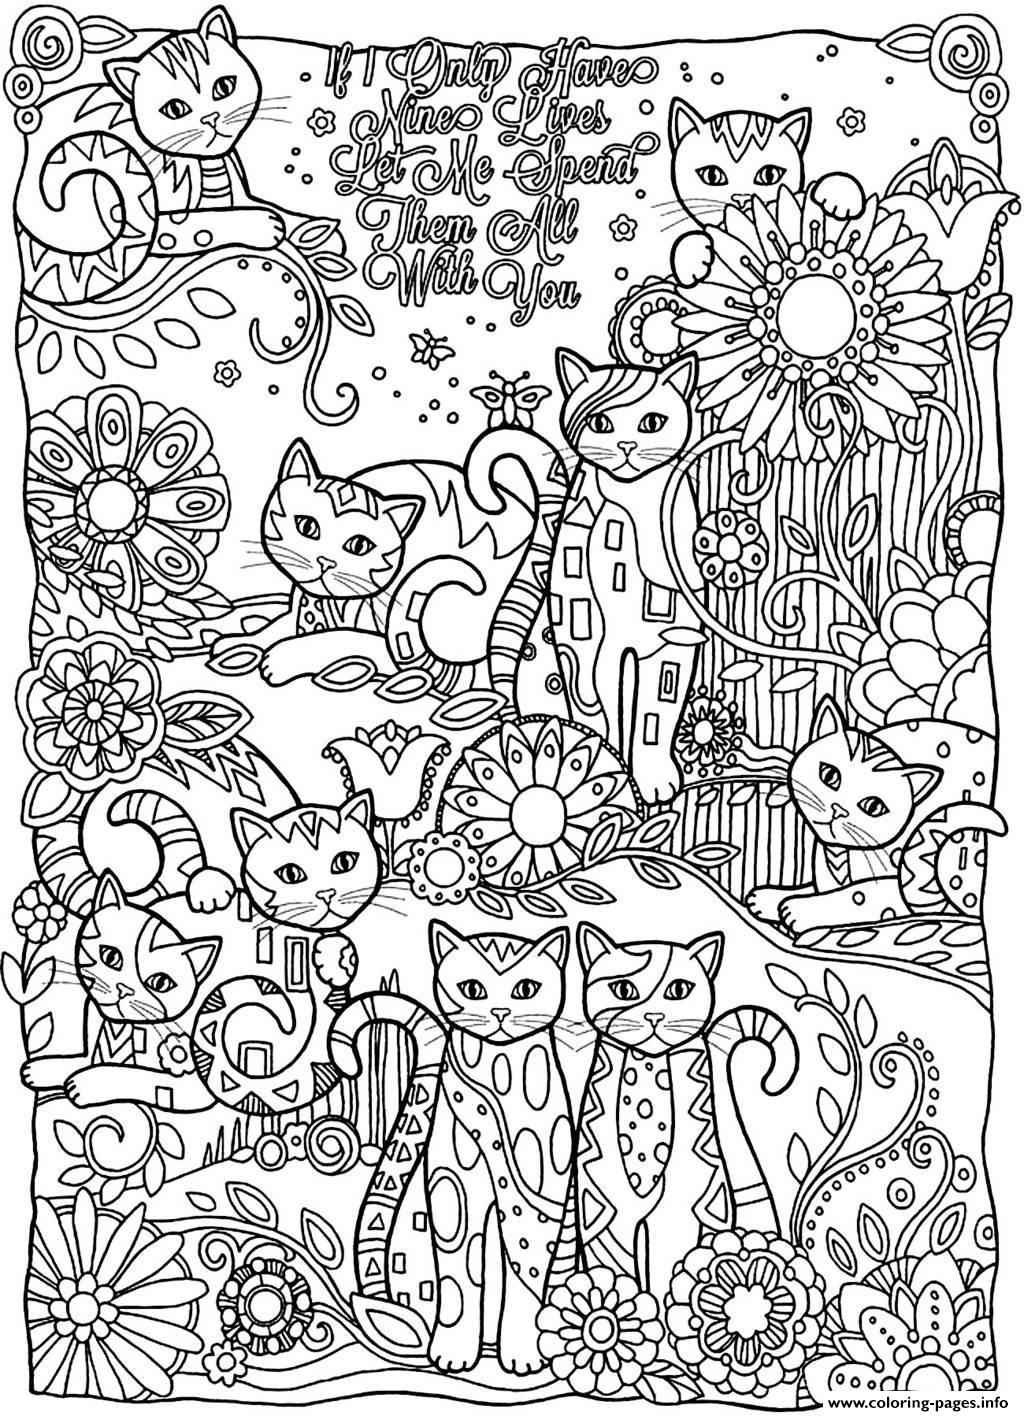 Happy Birthday Coloring Page: You are Amazing! by ShareJoyCreative ... | 1416x1024